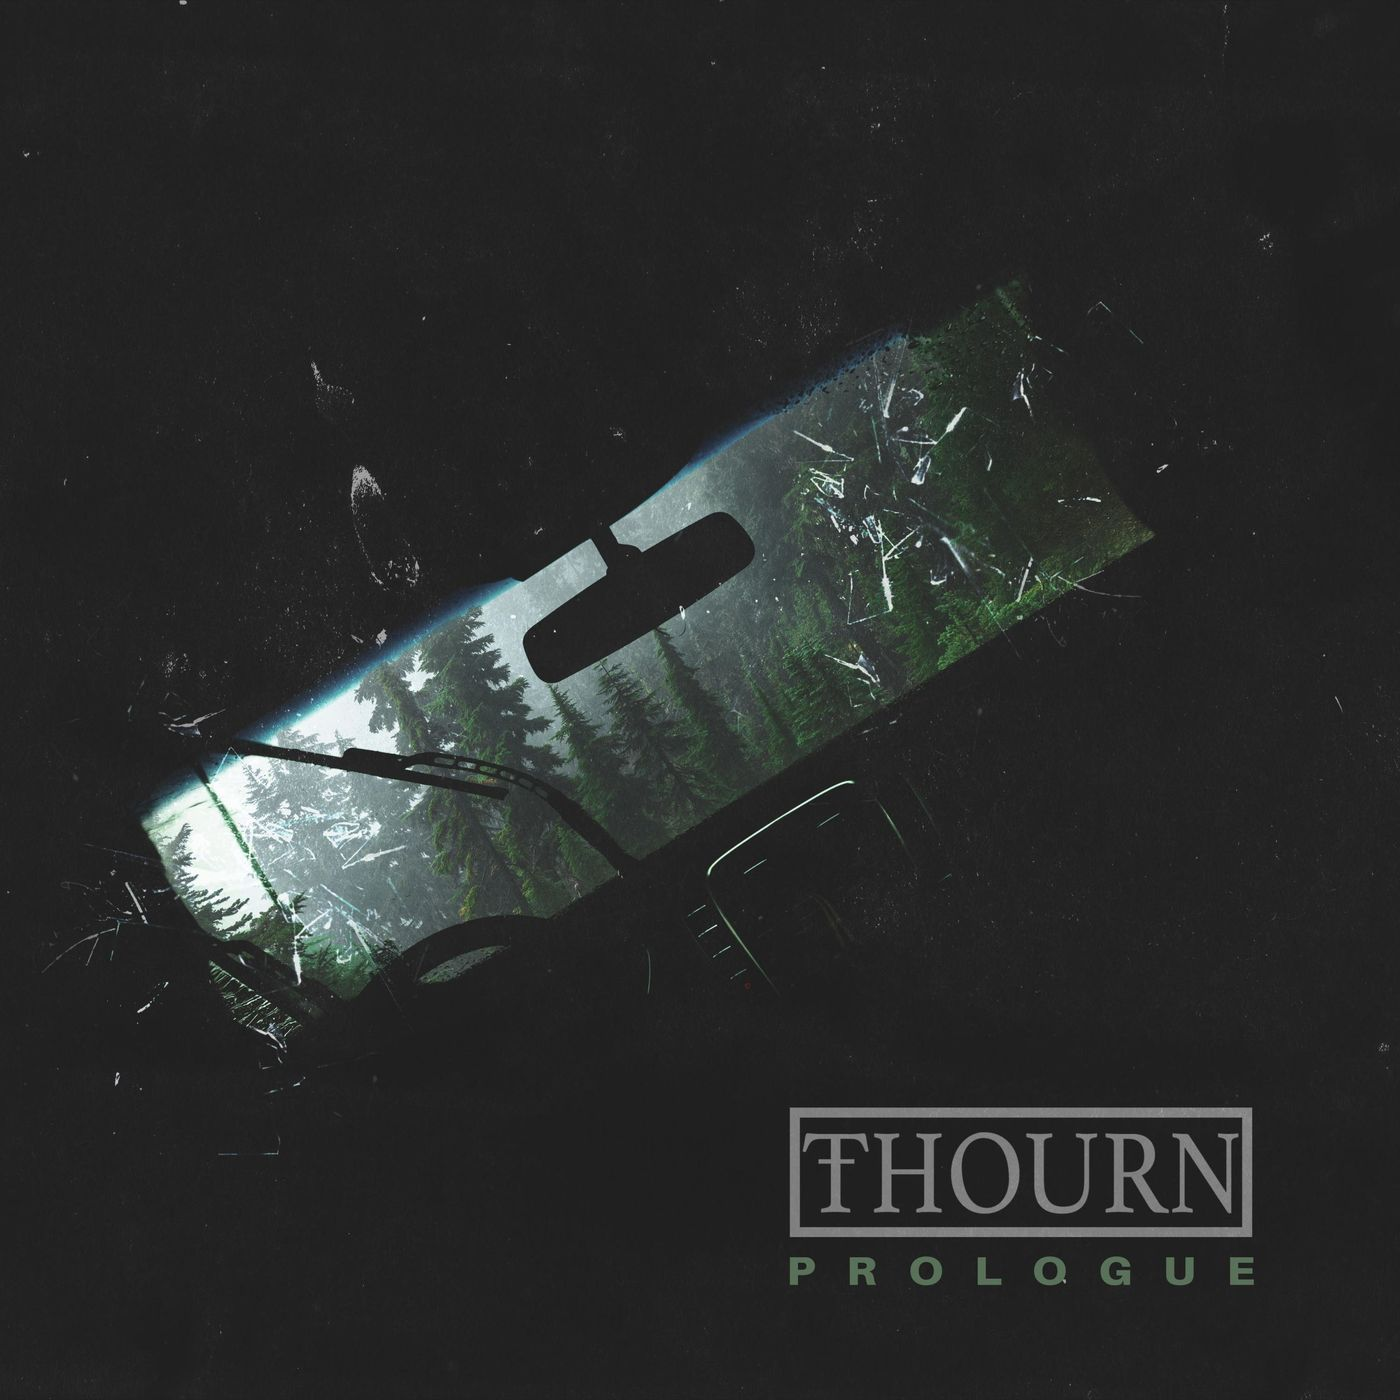 Thourn - Prologue [EP] (2021)